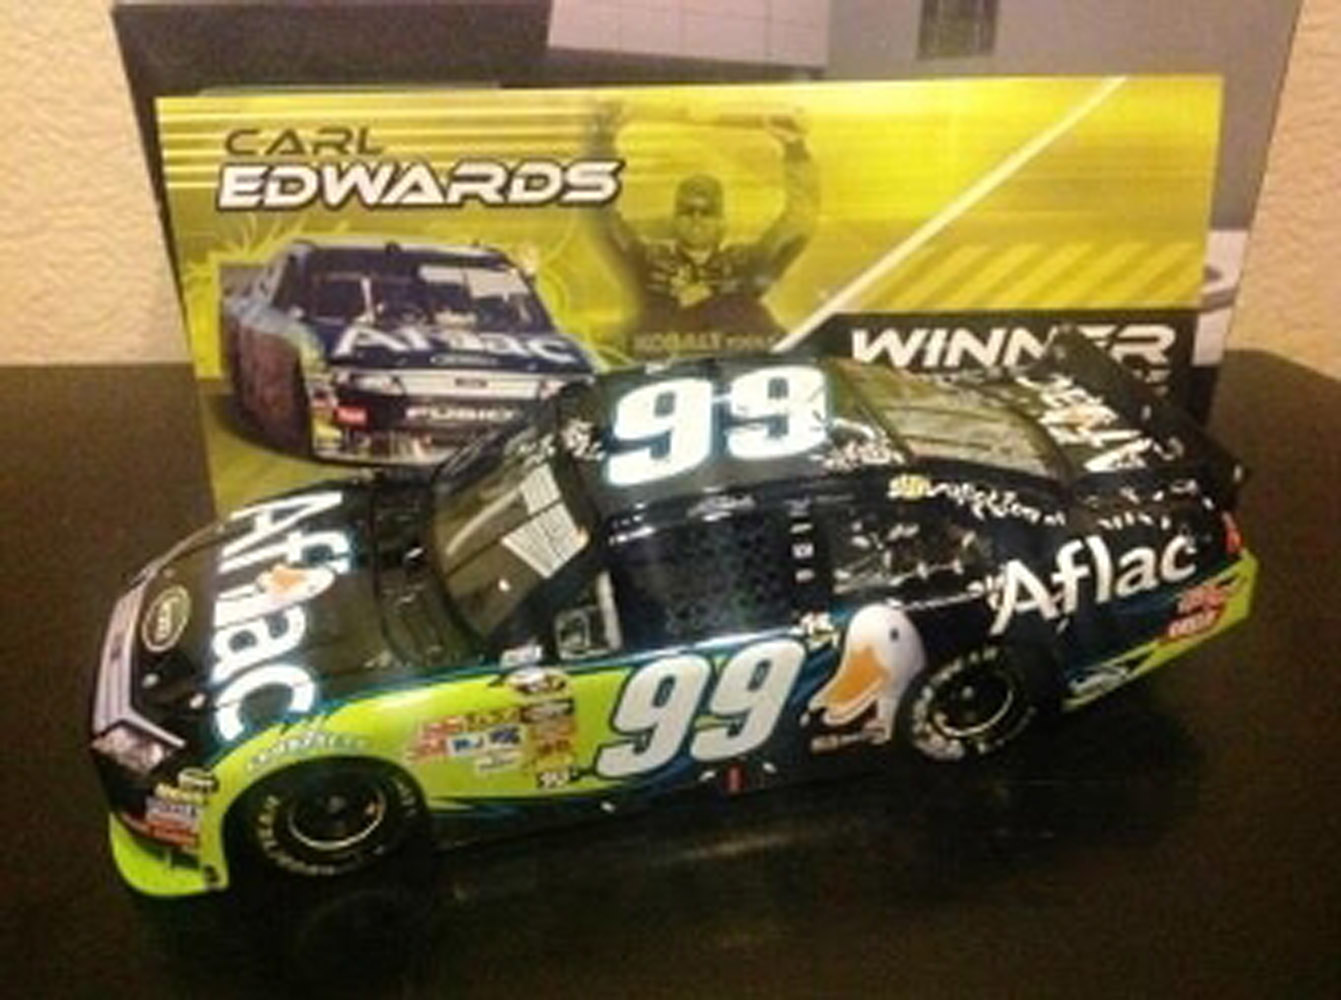 2010 Carl Edwards #99 Aflac Phoenix Raced Win 1/24 Diecast Car